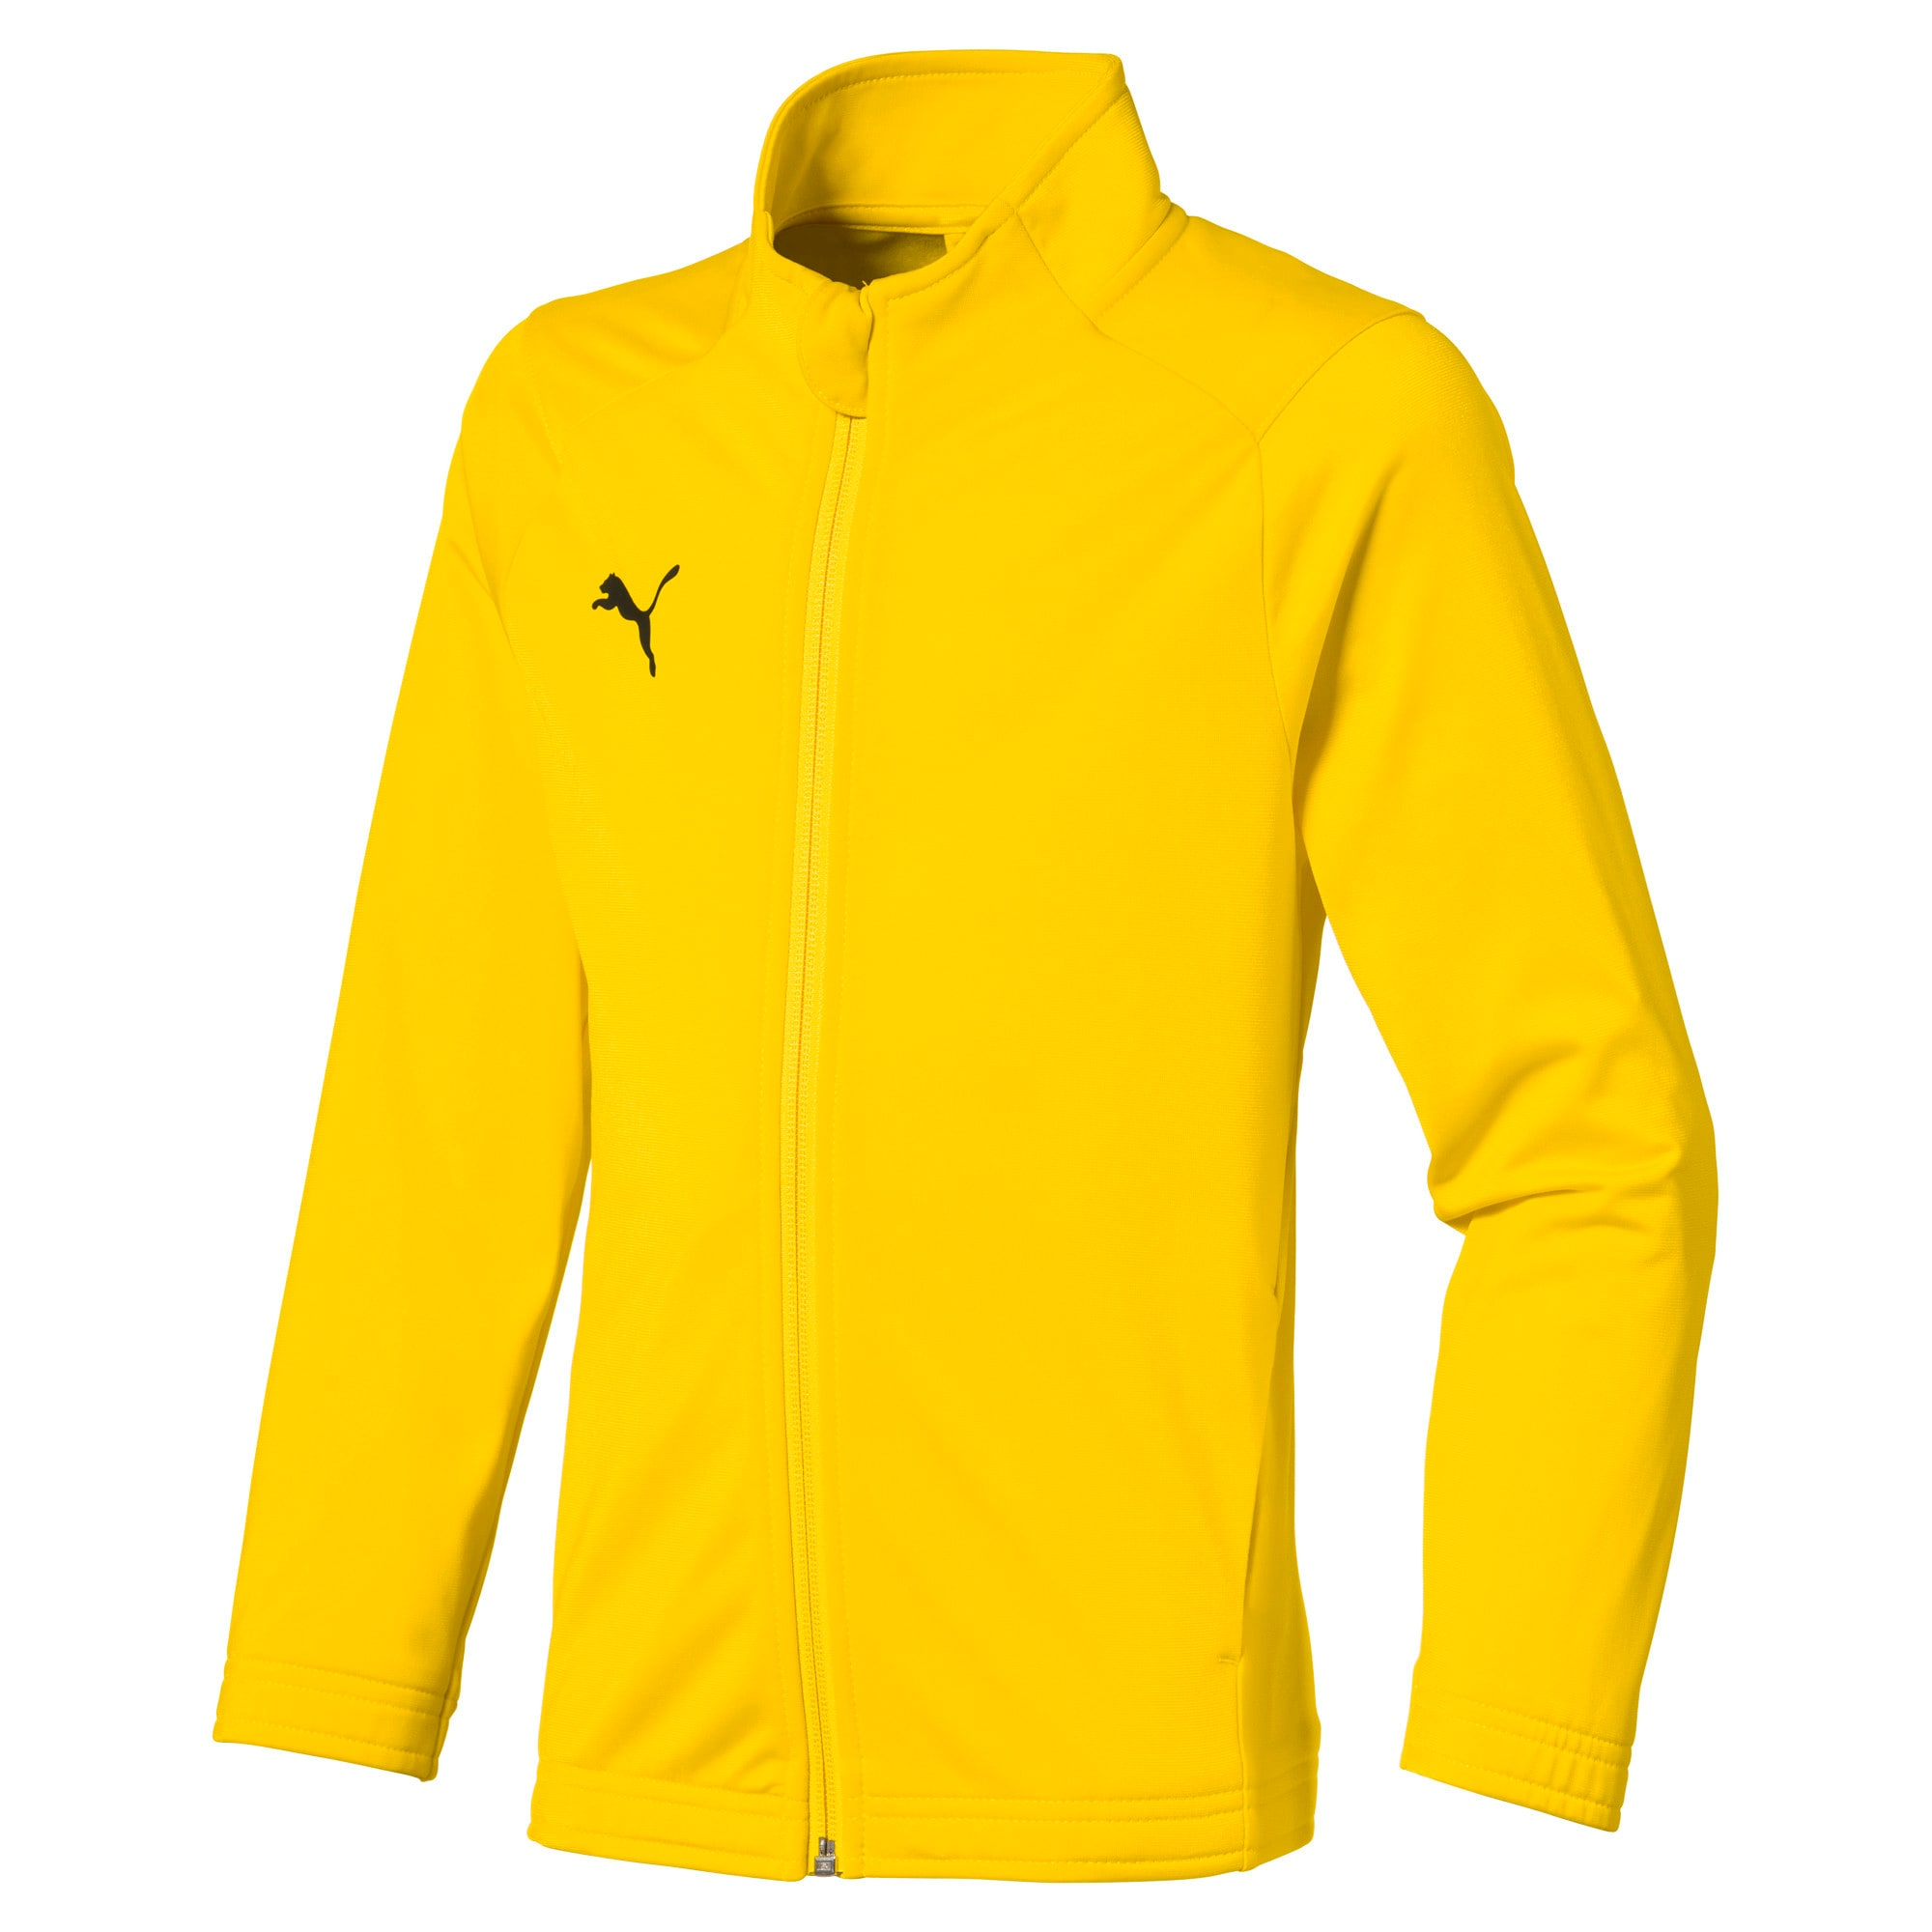 Thumbnail 1 of Fußball Kinder LIGA Sideline Core Jacke, Cyber Yellow-Puma Black, medium